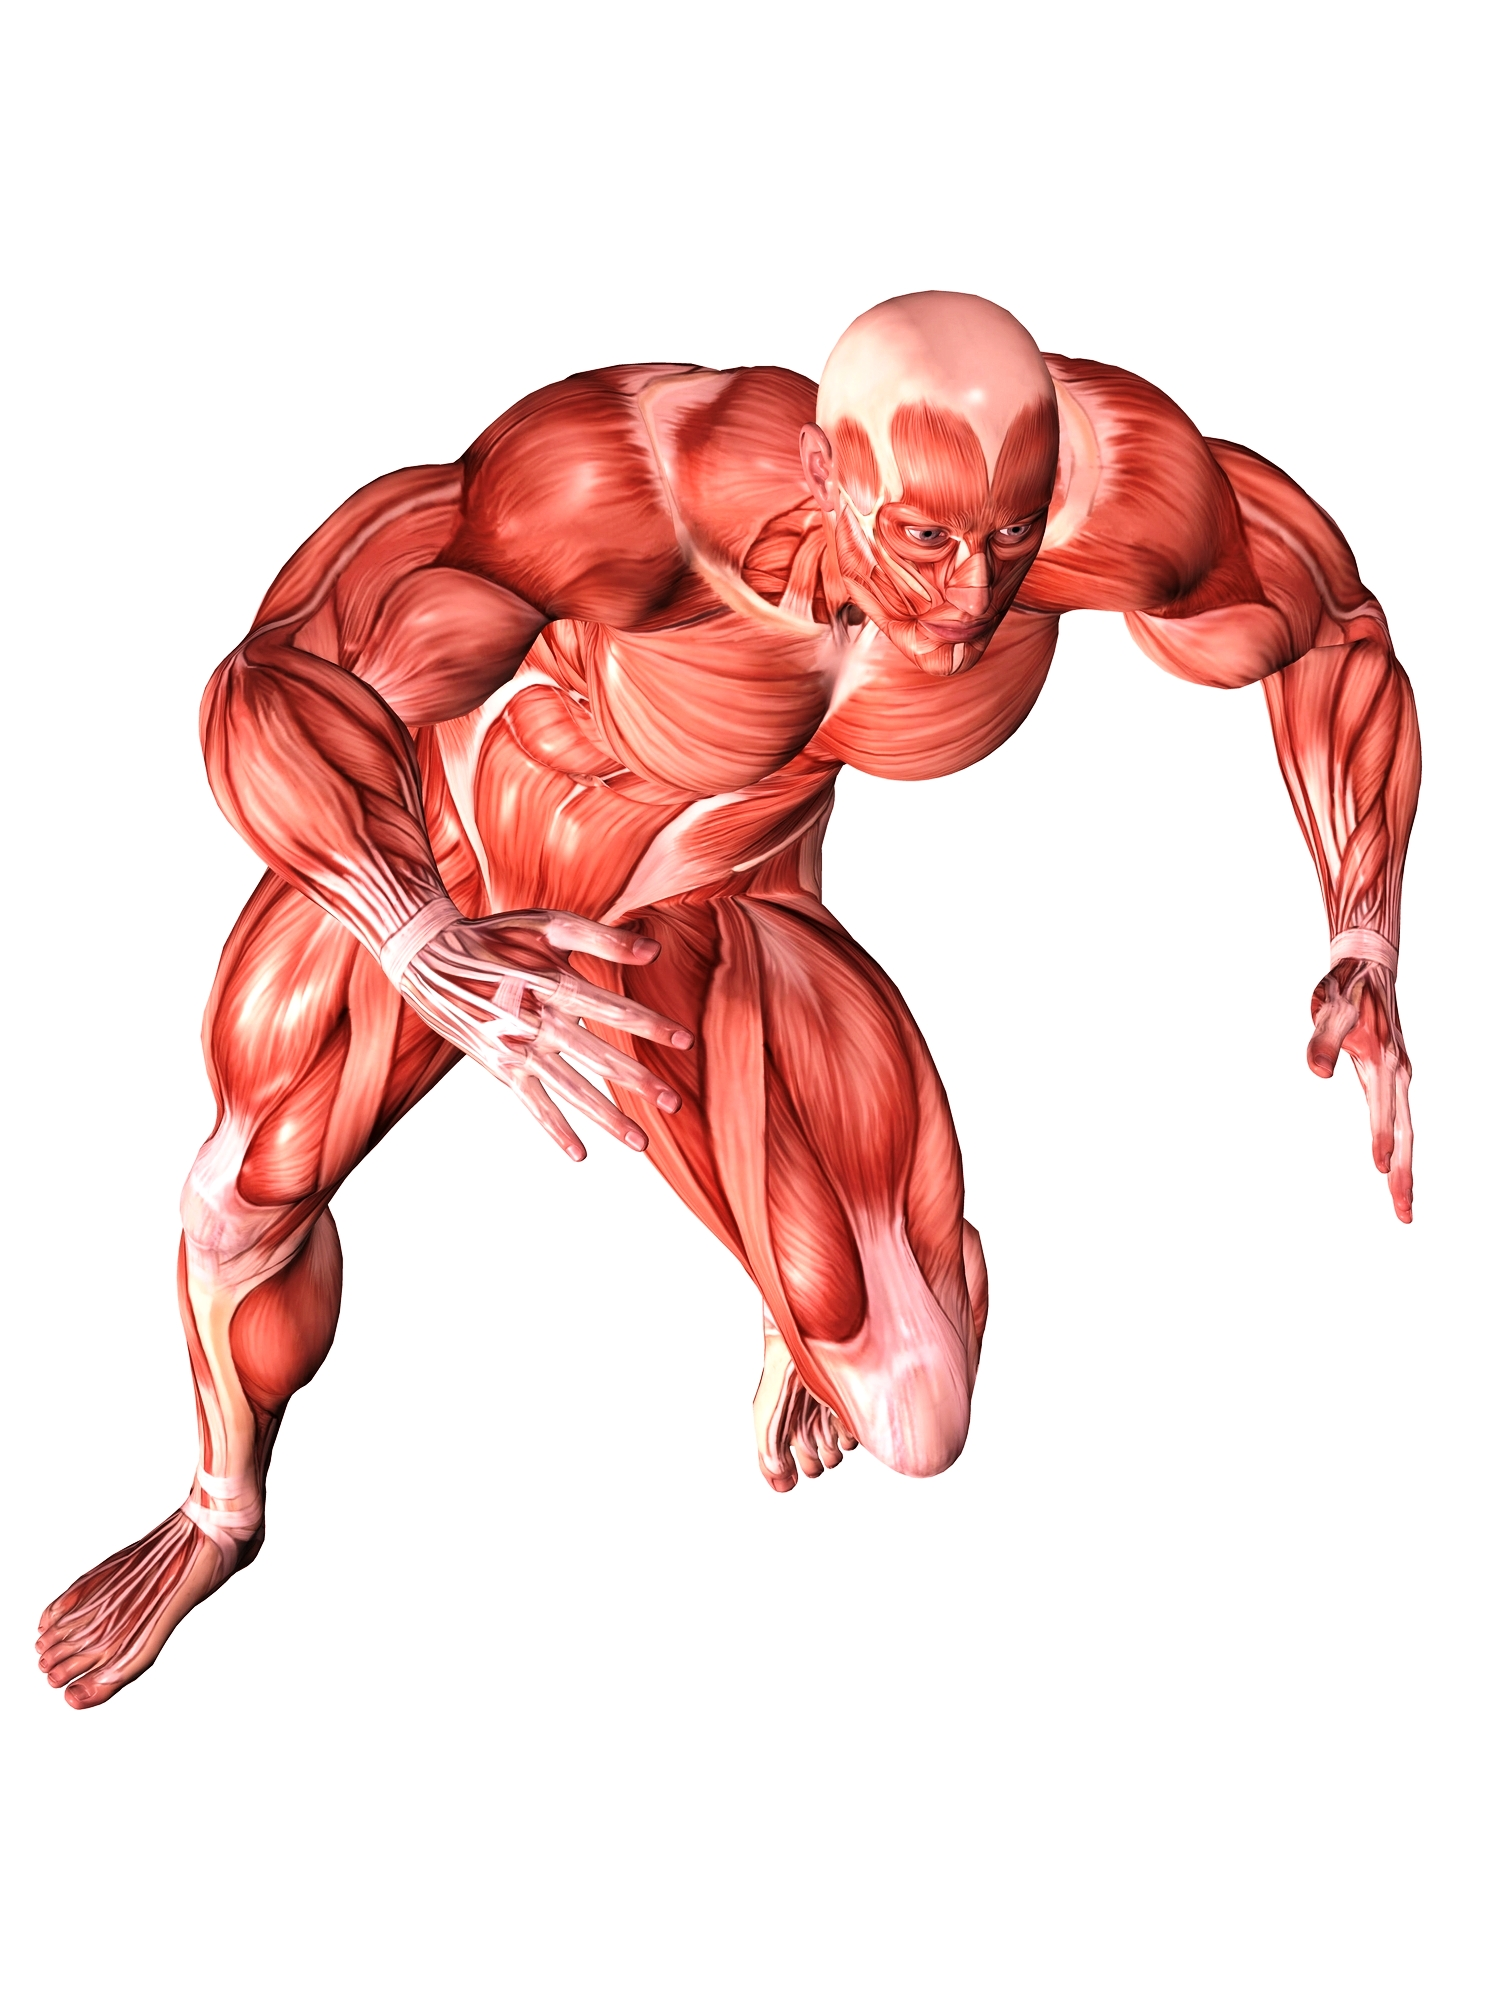 Muscular System Activities